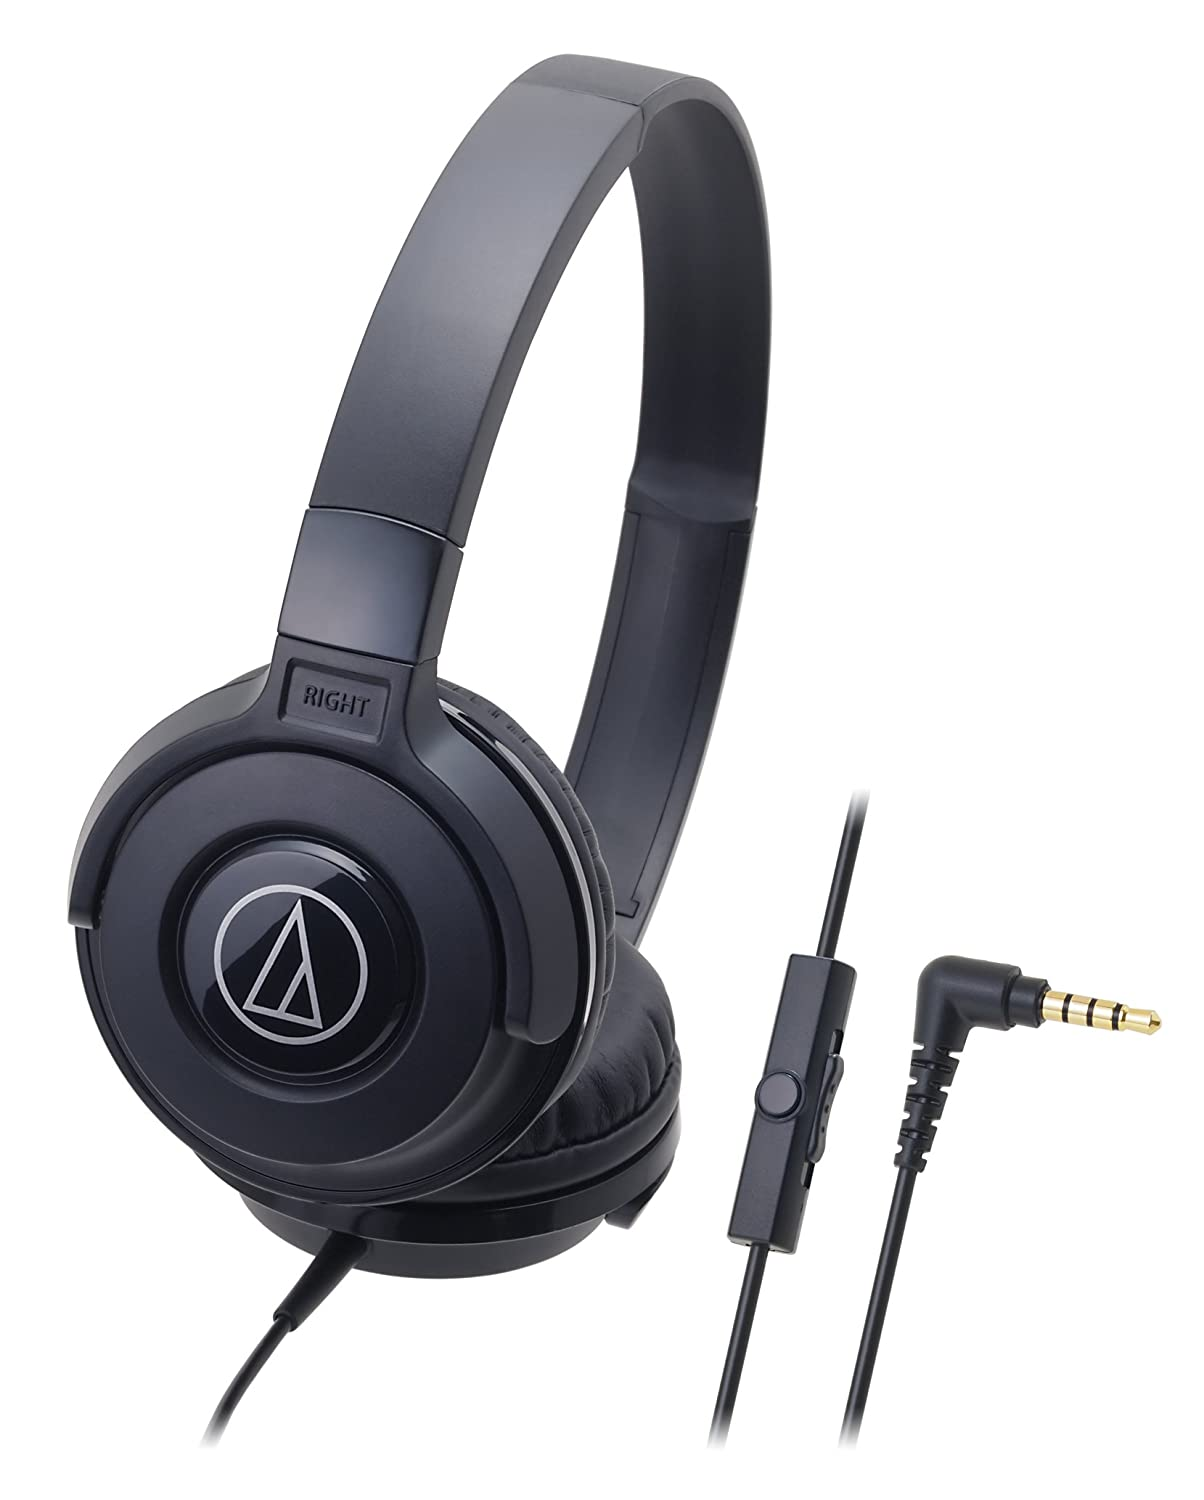 Image result for Audio Technica ATH-S100iS